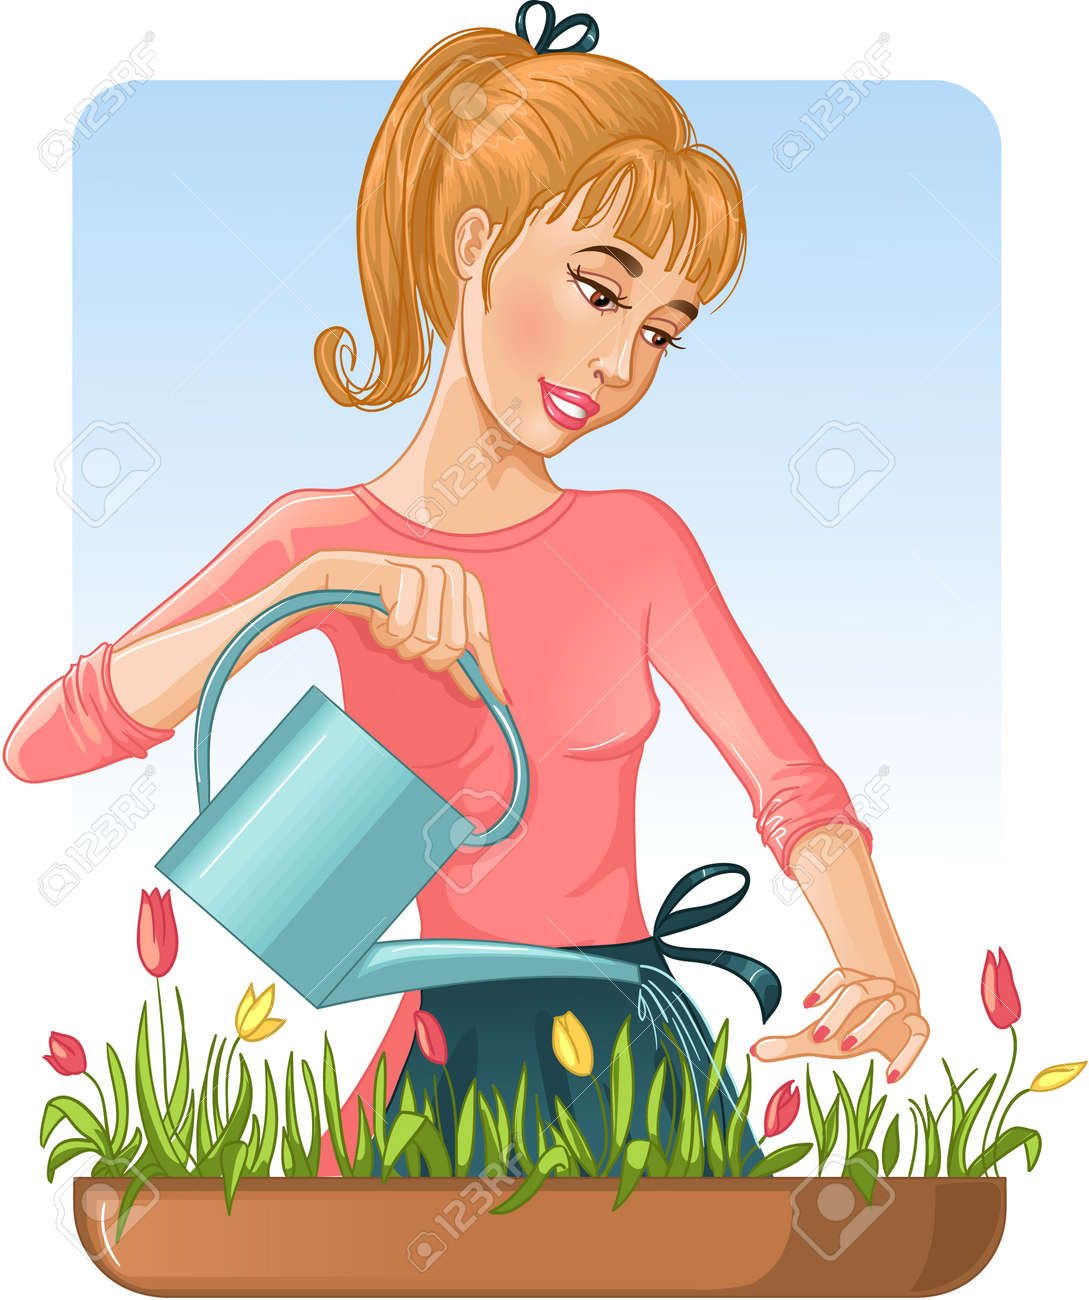 Woman watering her flowers with can. Stock Vector - 12481180